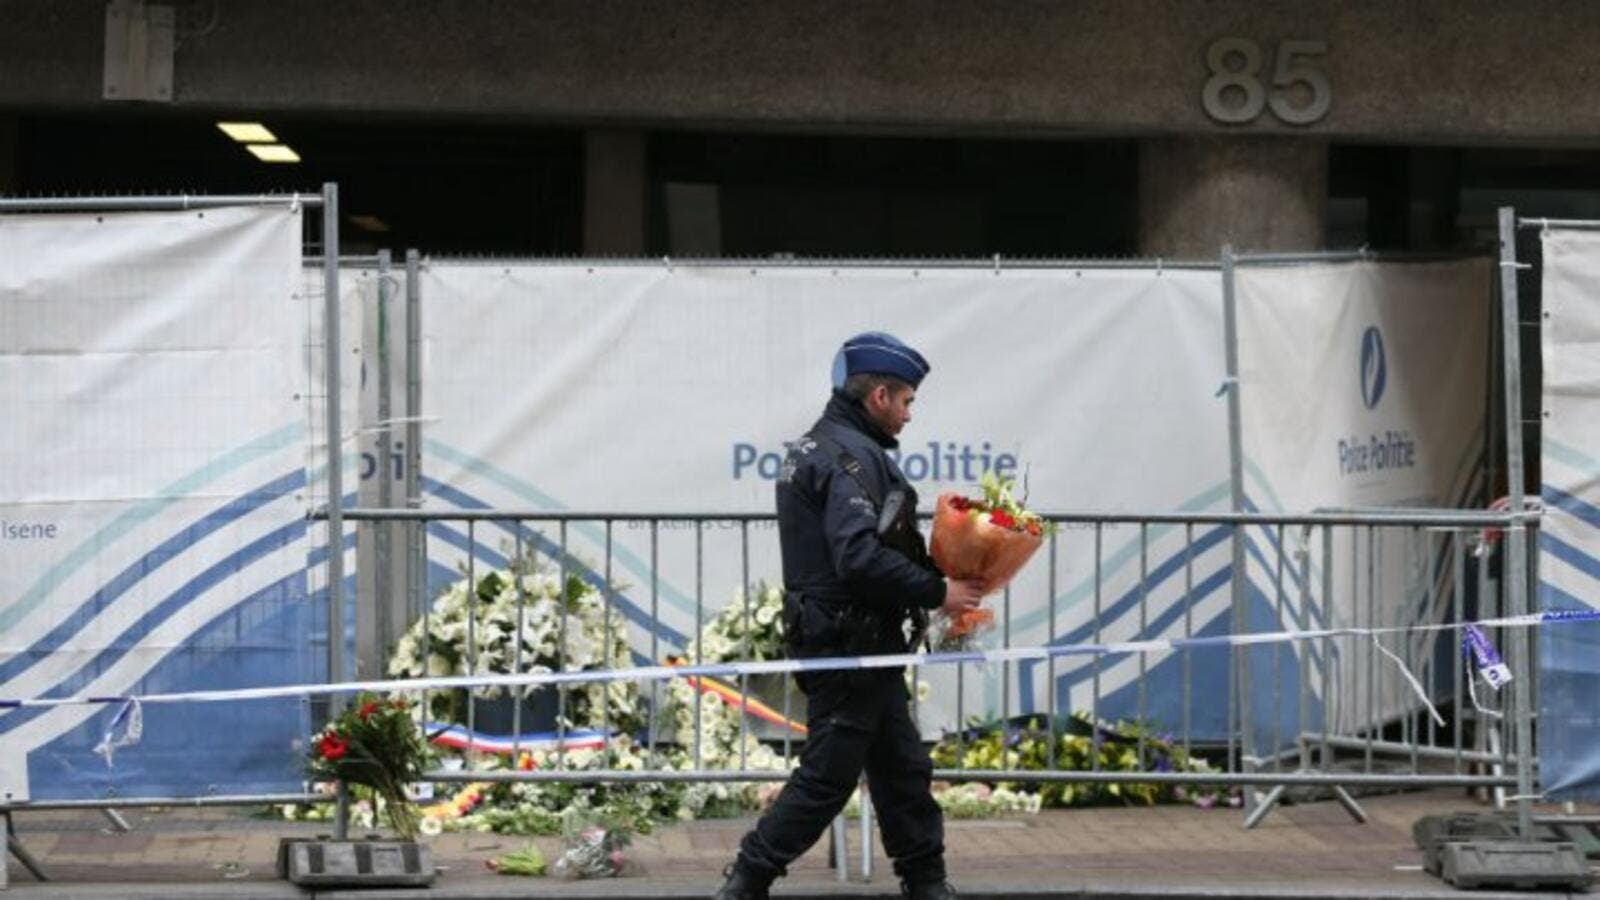 A security official lays flowers at the memorial site at Maalbek metro station. (AFP/File)